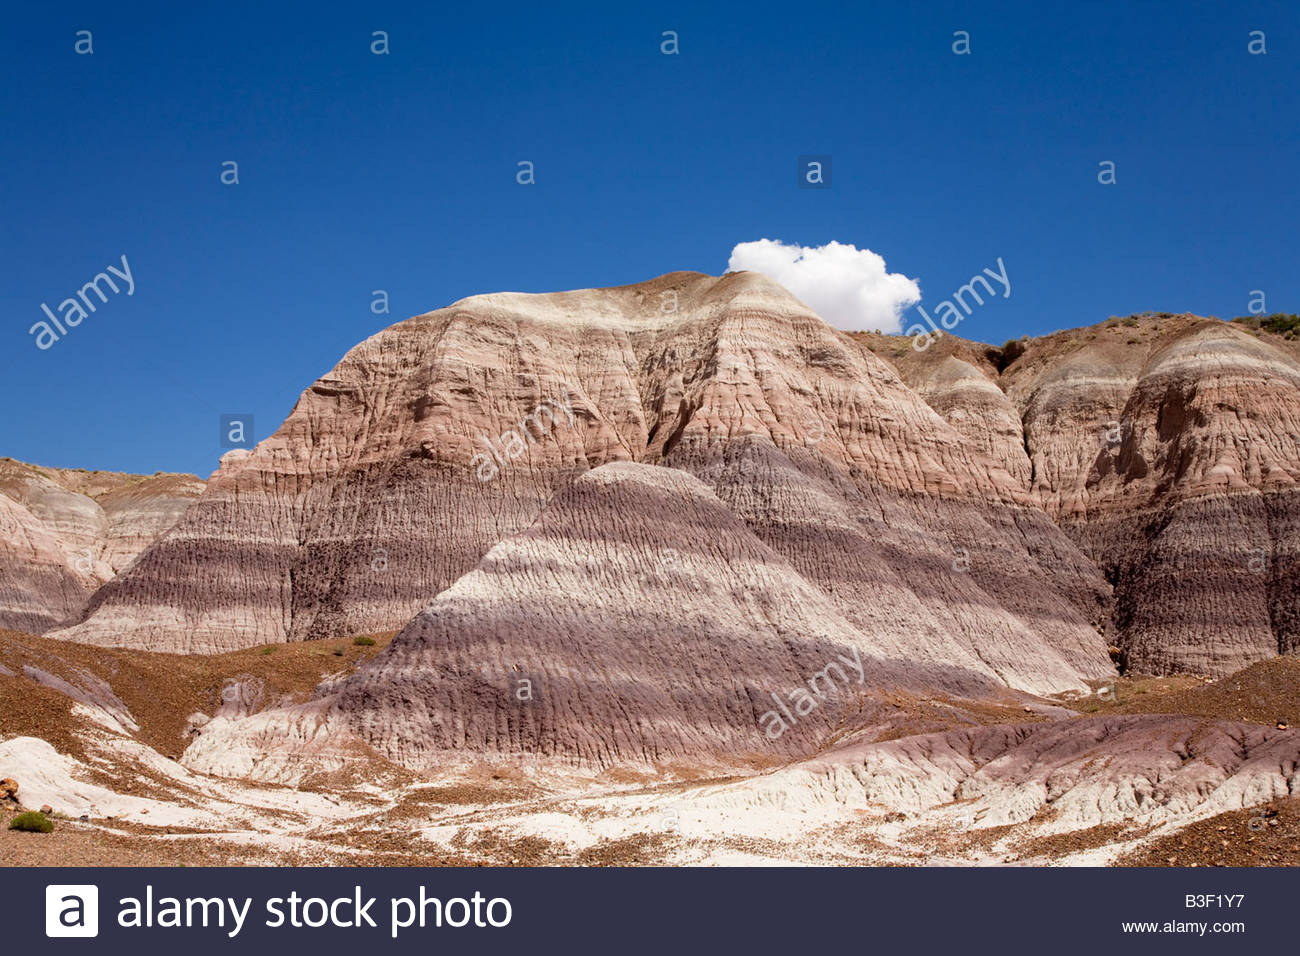 Bandlands eroded clay hills Blue Mesa Trail Petrified Forest National Park Arizona - Stock Image